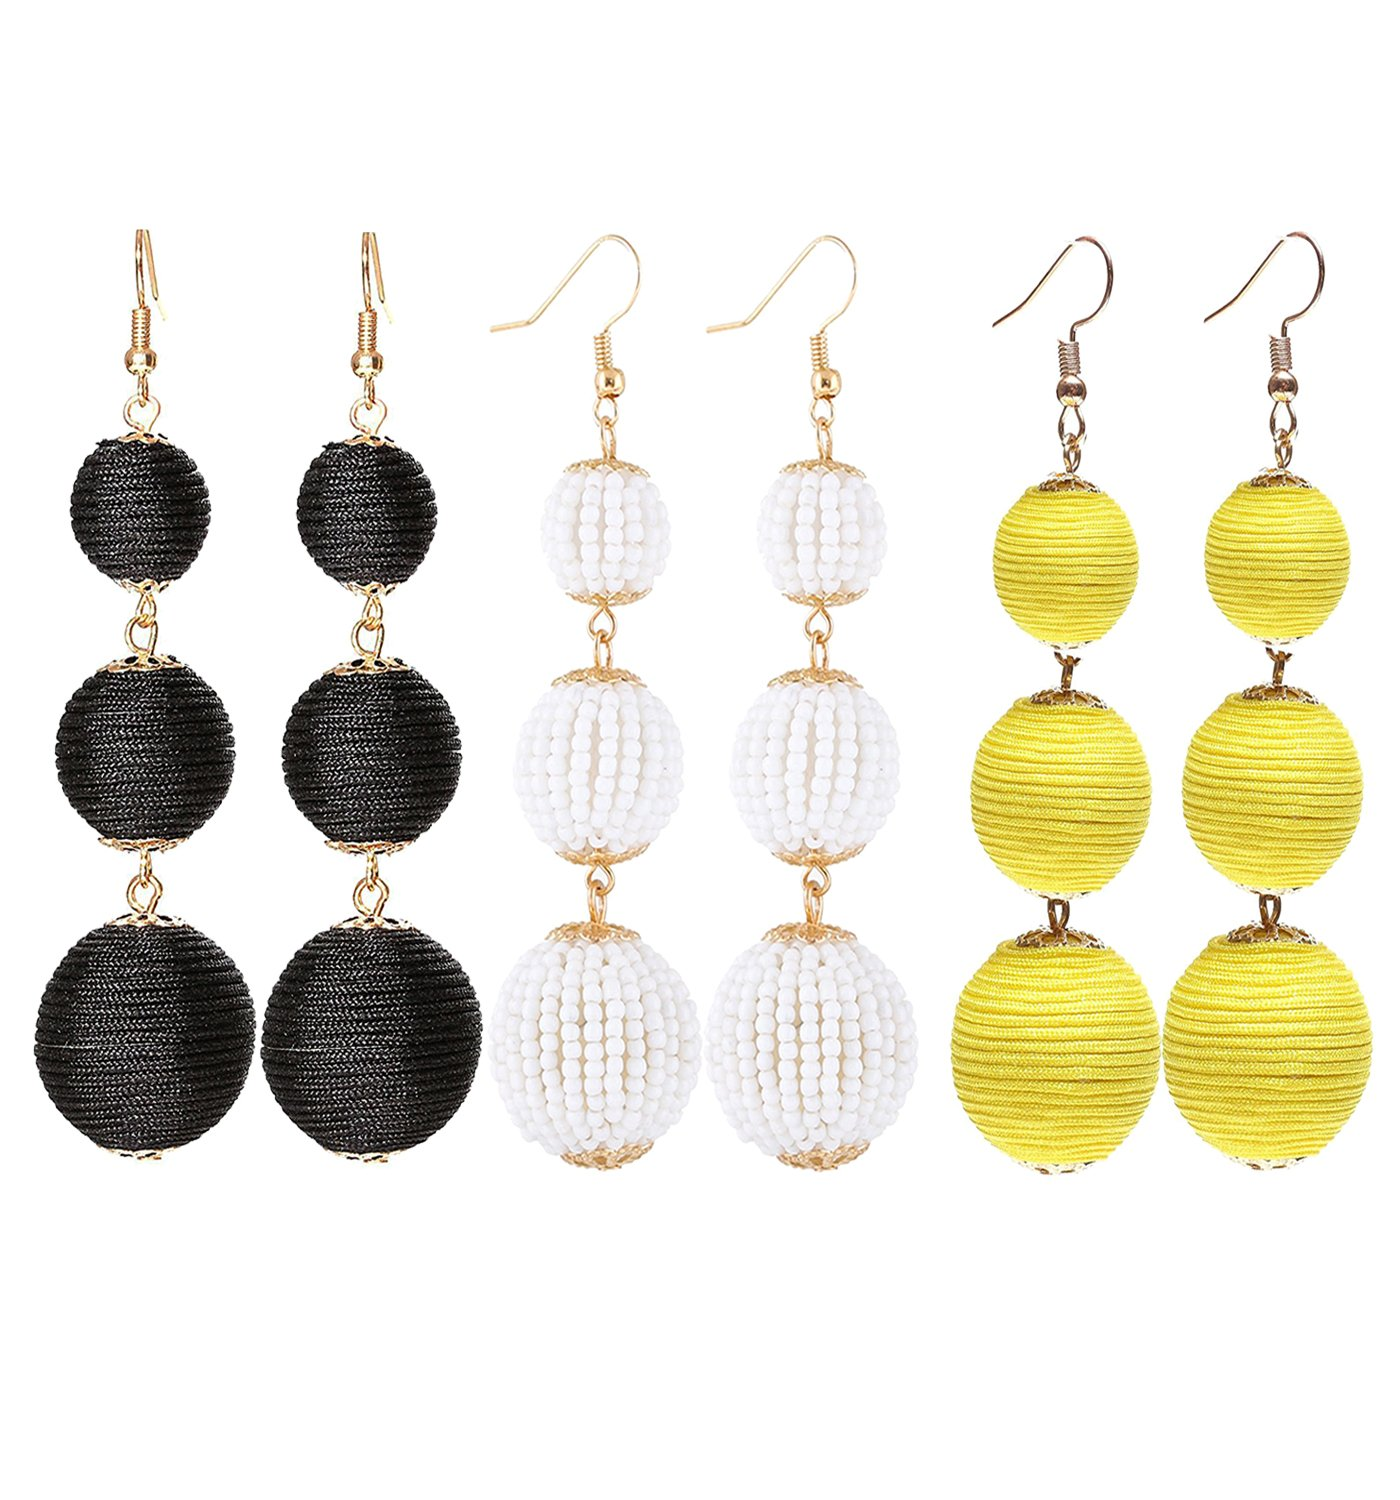 VK Accessories Thread Ball Dangle Earrings Thread Dangle Earrings Soriee Drop Earrings Beaded Ball Ear Drop (3 pairs 03 New)